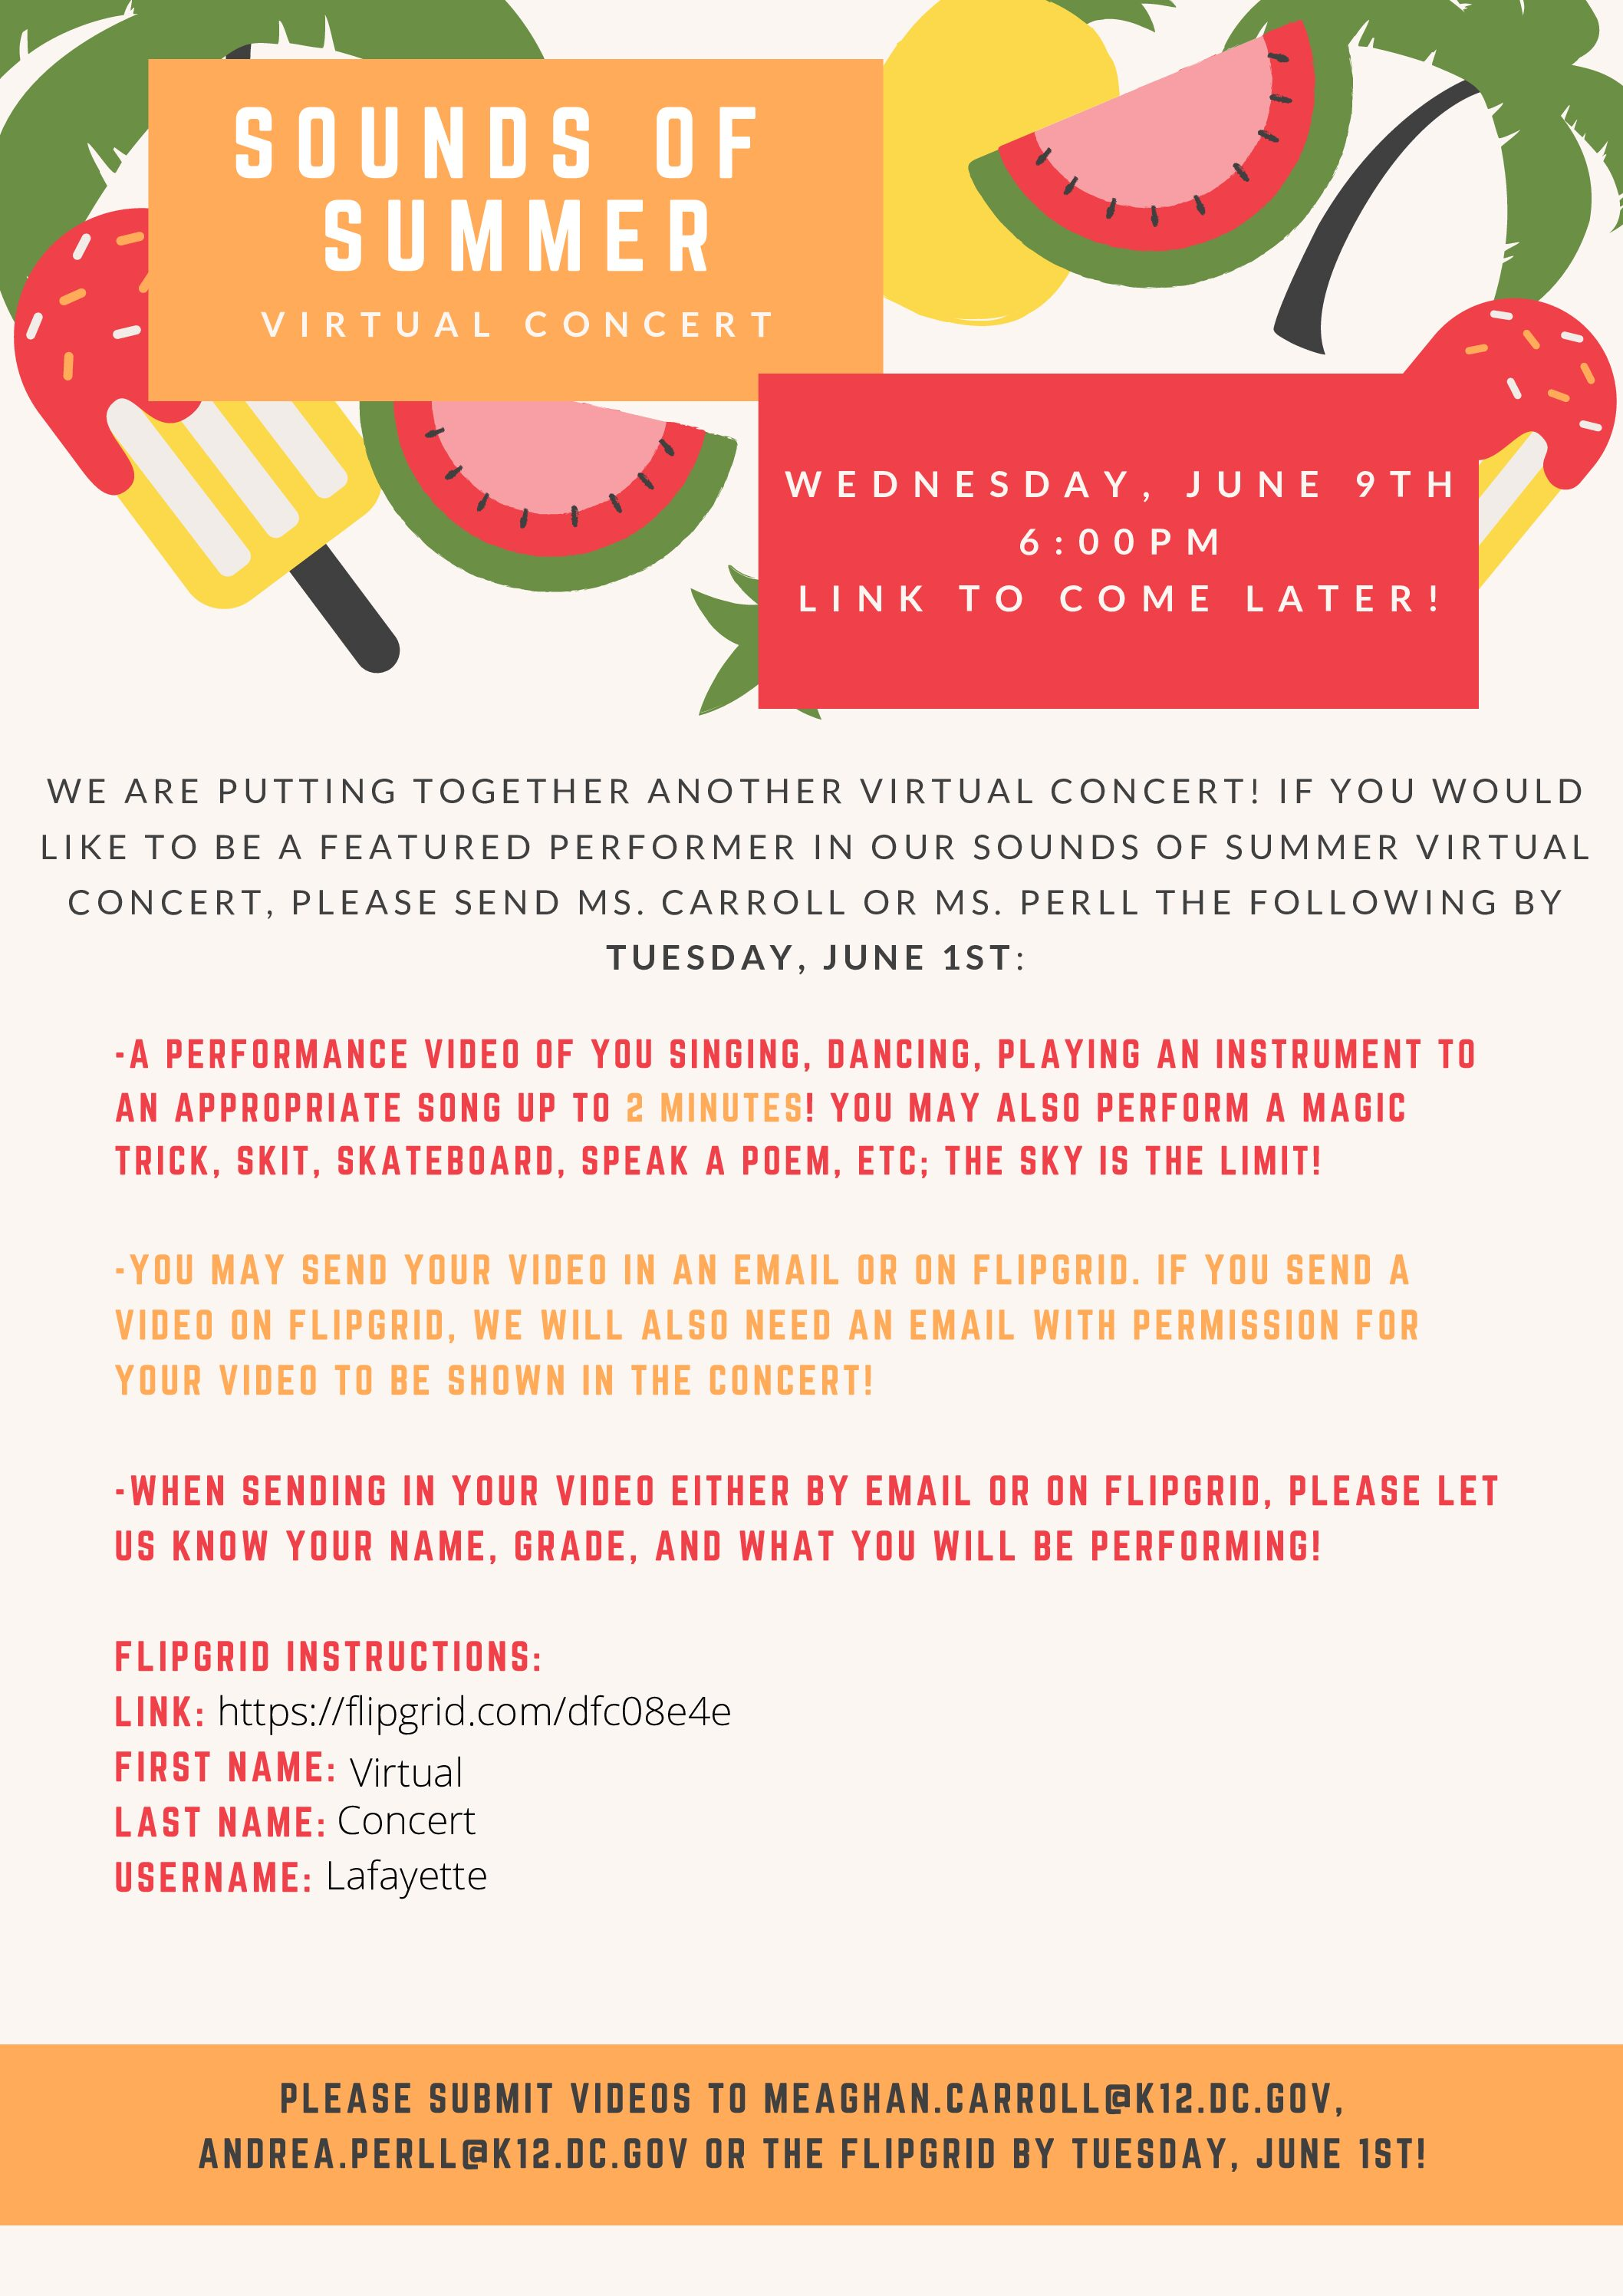 Sounds of Summer Virtual Concert Tomorrow, Wednesday, June 9 at 5:45pm